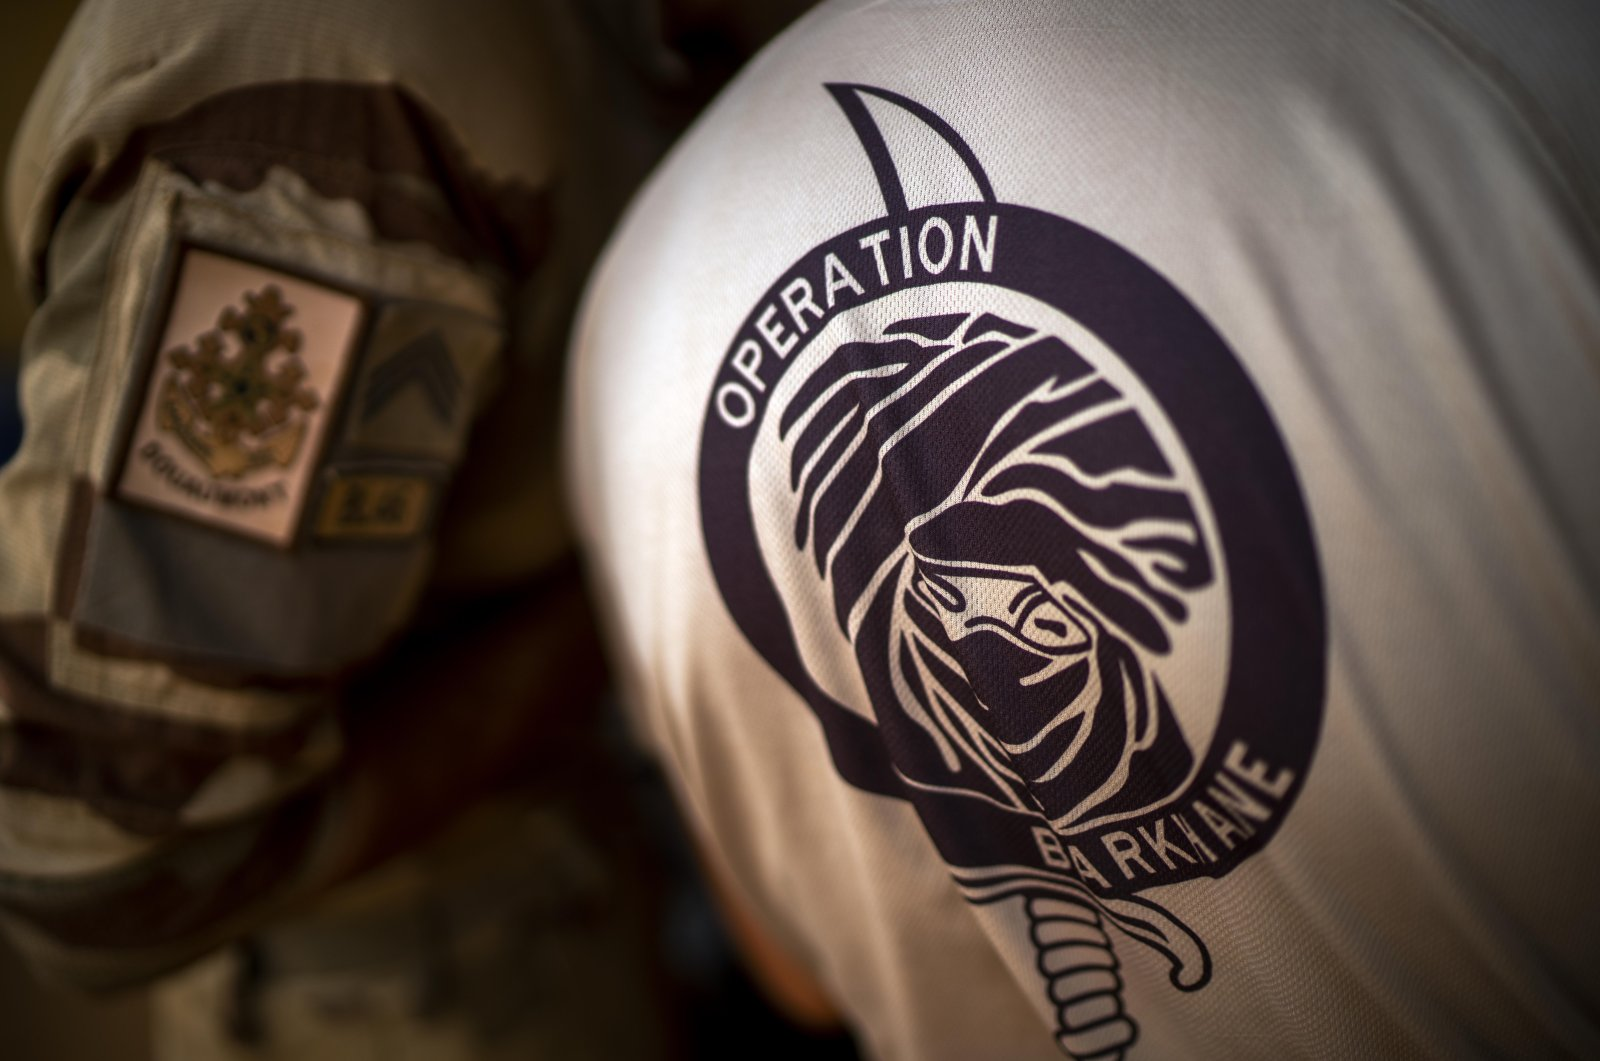 French Barkhane force soldiers, who wrapped up a four-month tour of duty in the Sahel, to leave their base in Gao, Mali, on June 9, 2021. (AP Photo)